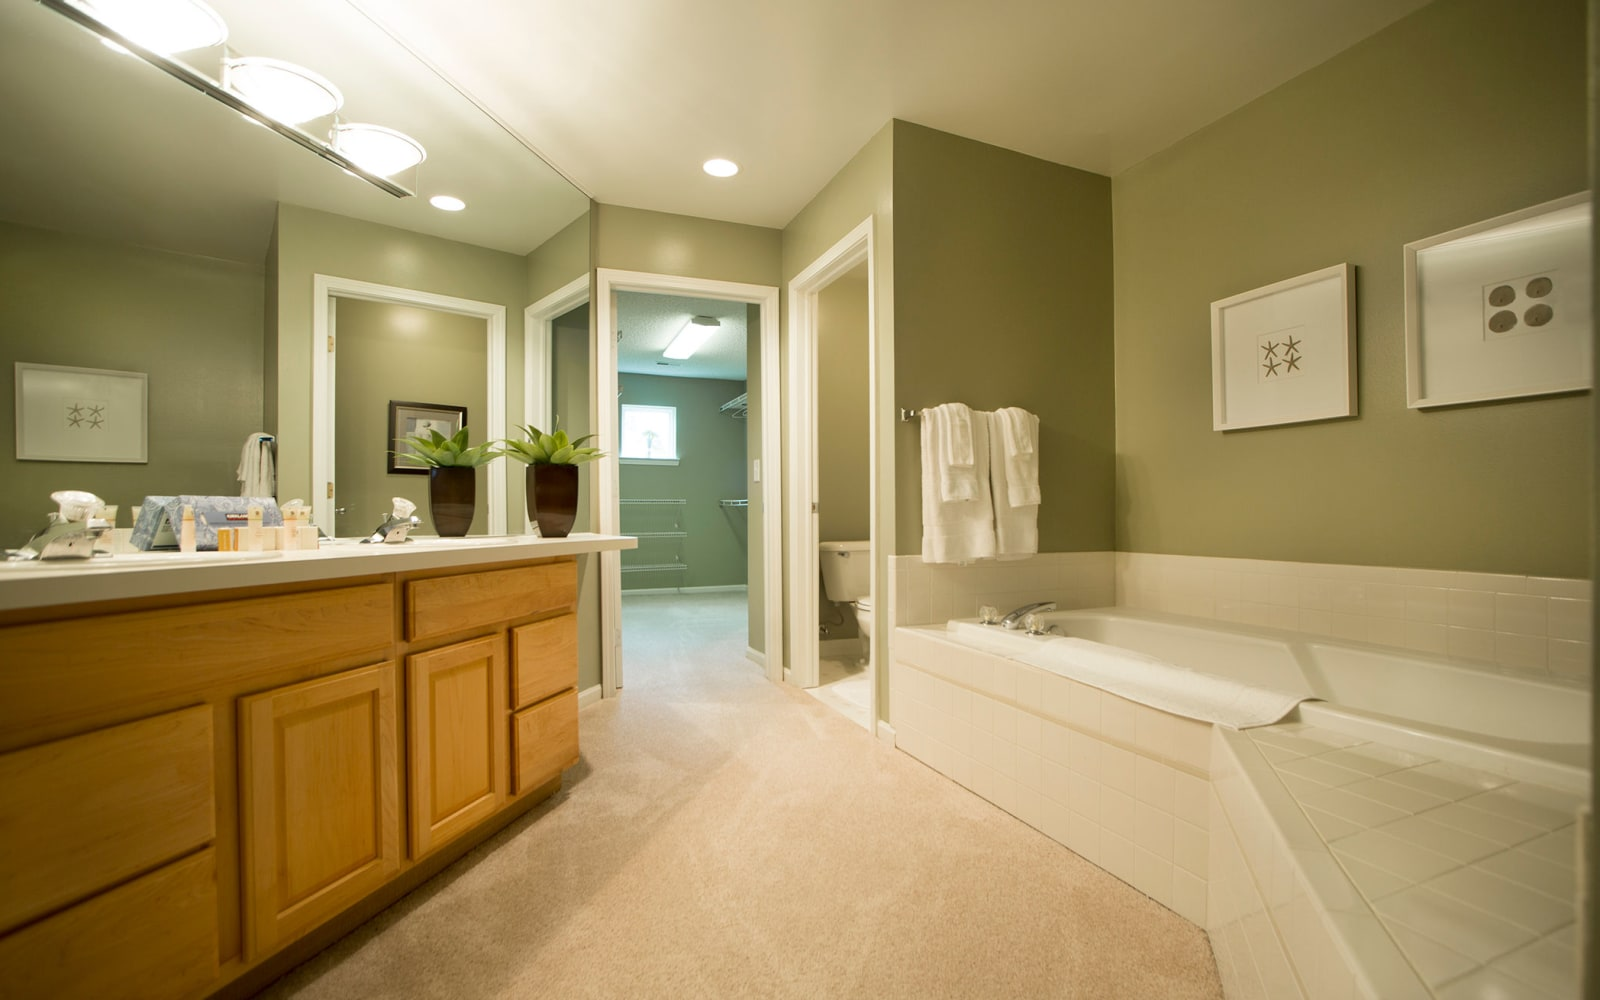 Bathroom at Aldingbrooke in West Bloomfield, Michigan